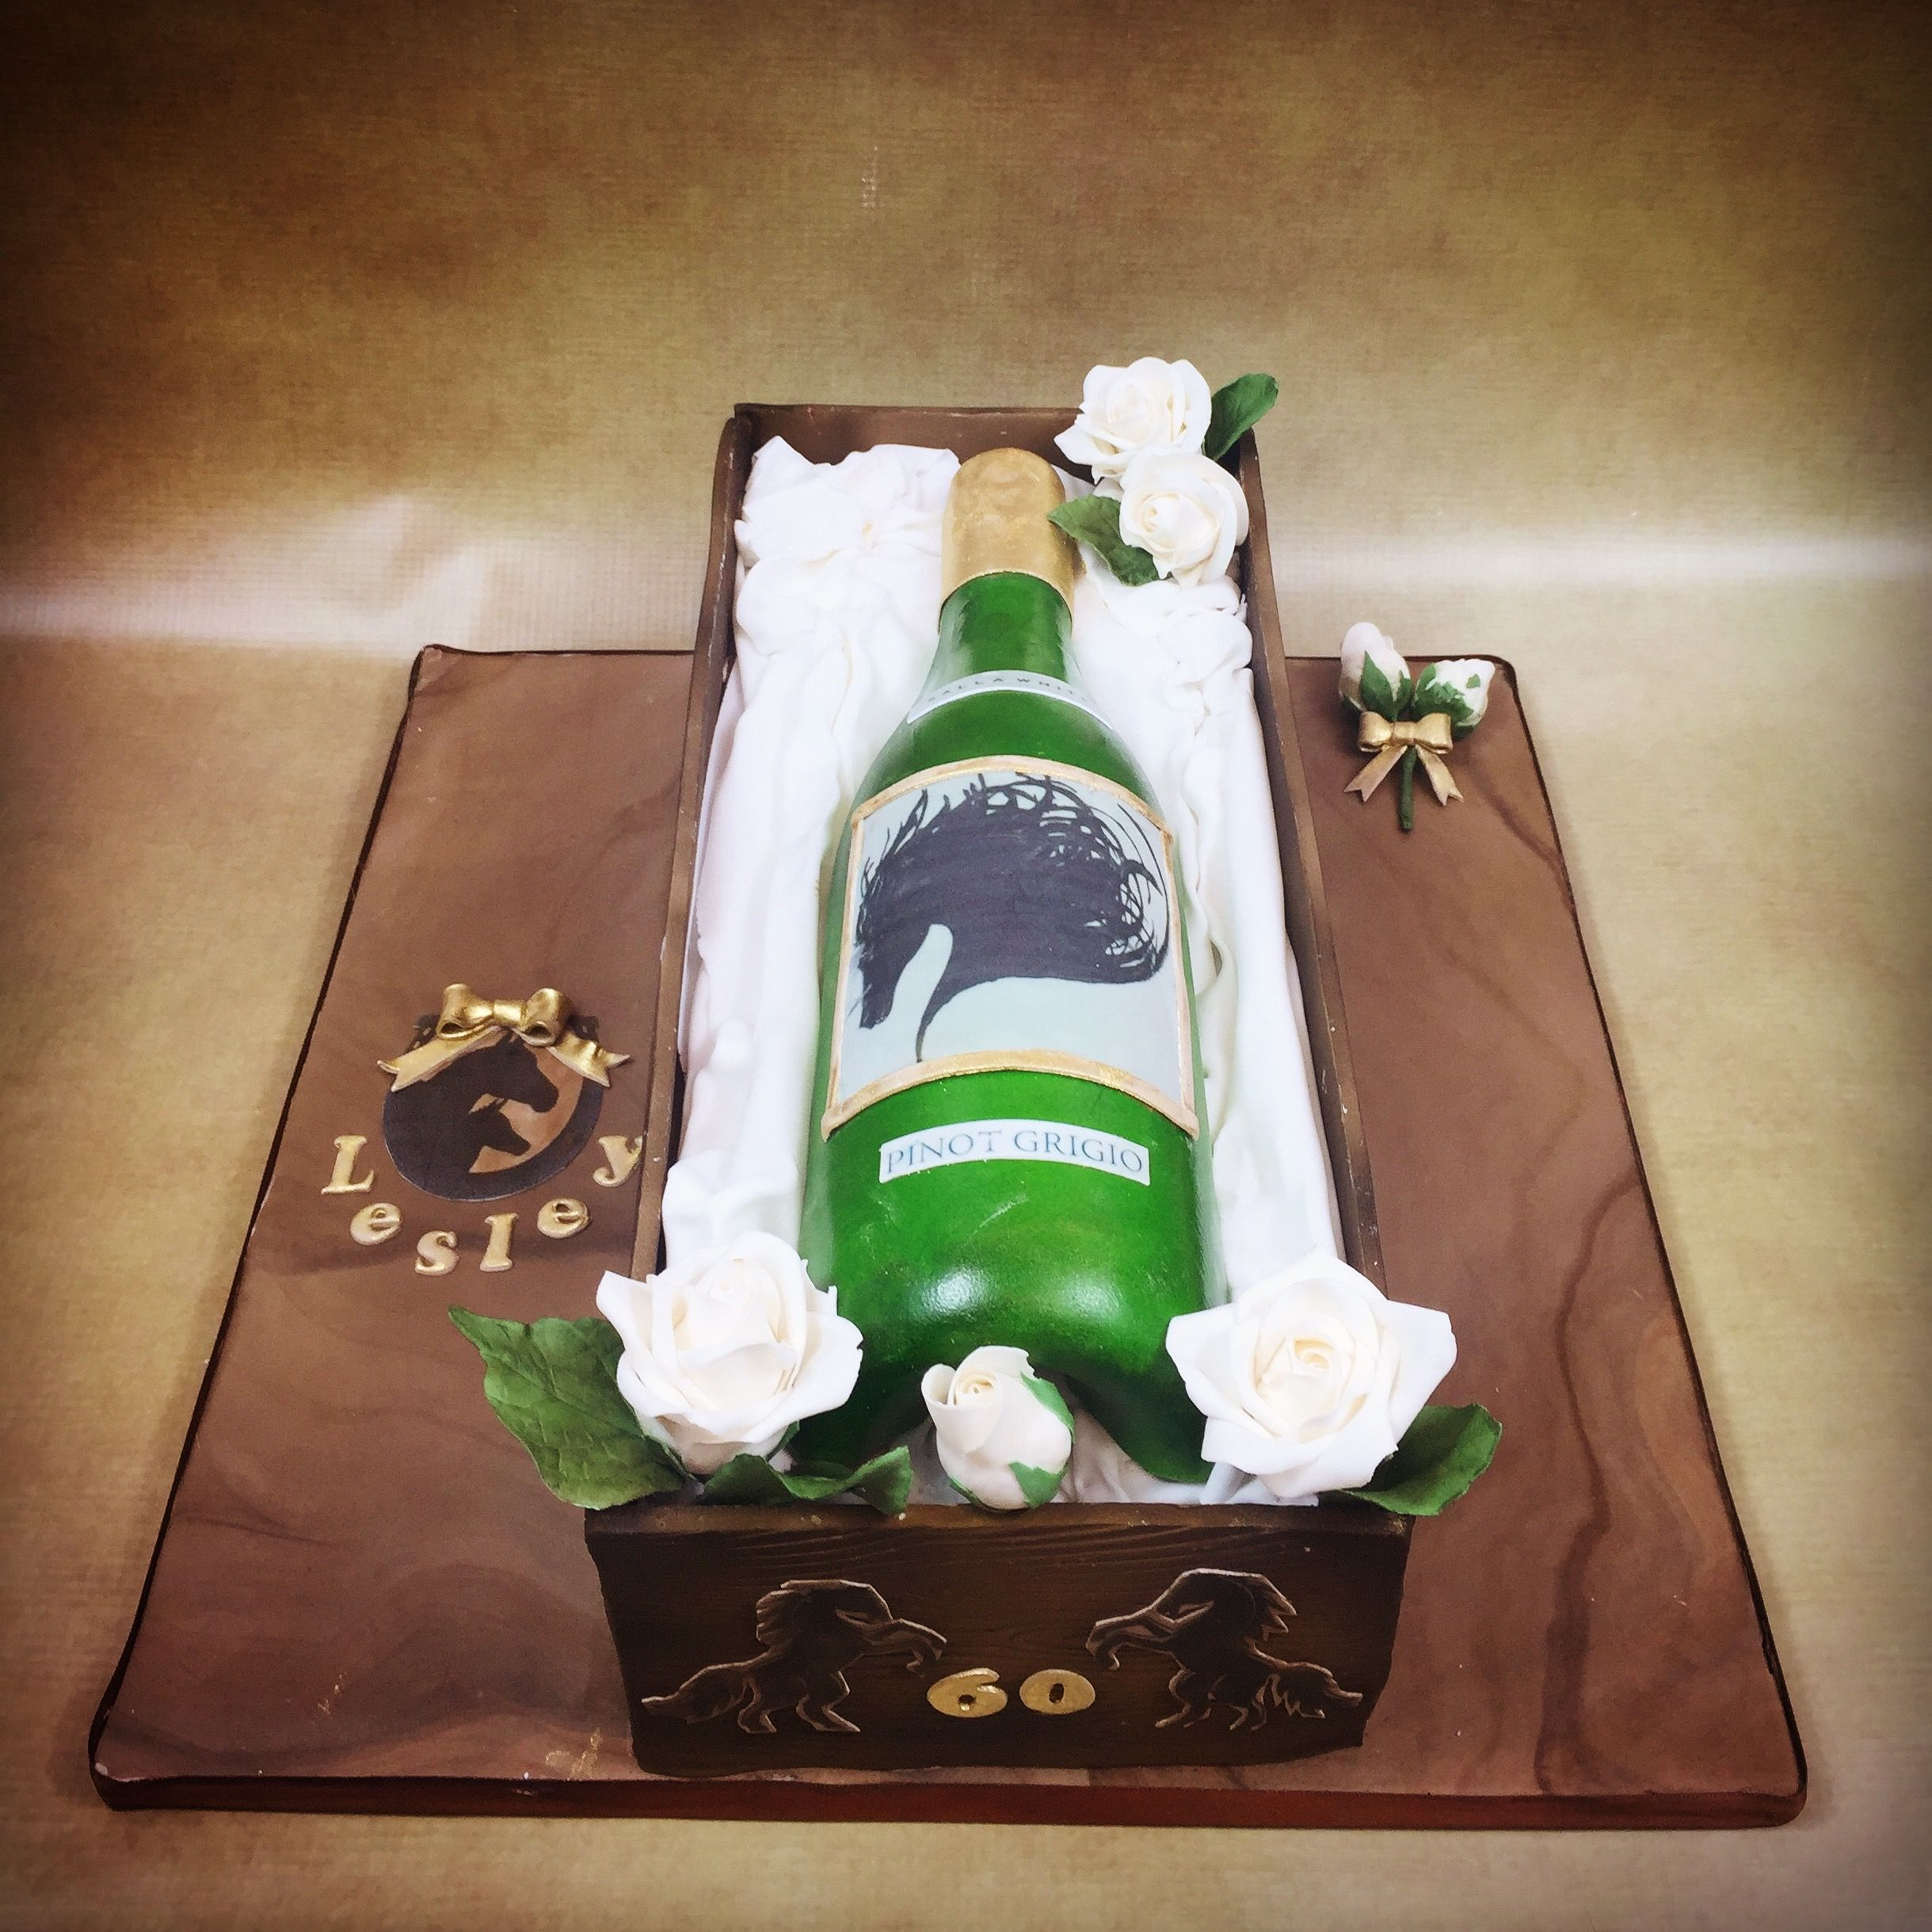 White Wine Bottle 60th Birthday Cake With Horse Theme For A Lover By Olivias Boutique